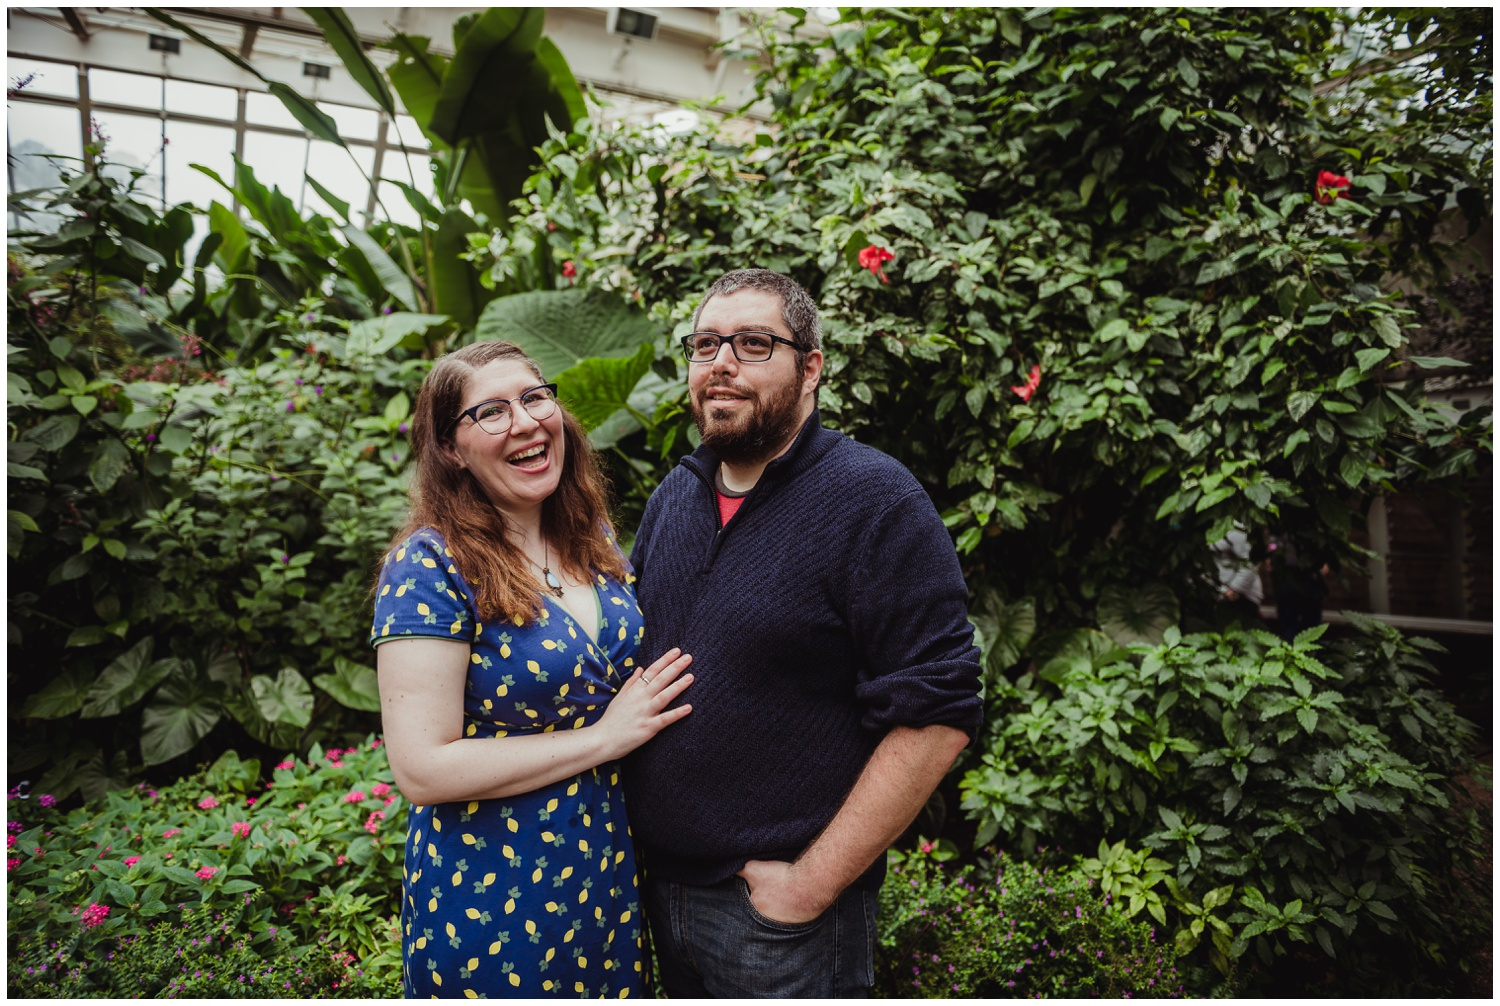 The couple laugh together while in the Butterfly House during their engagement photo session with Rose Trail Images in Durham, NC.